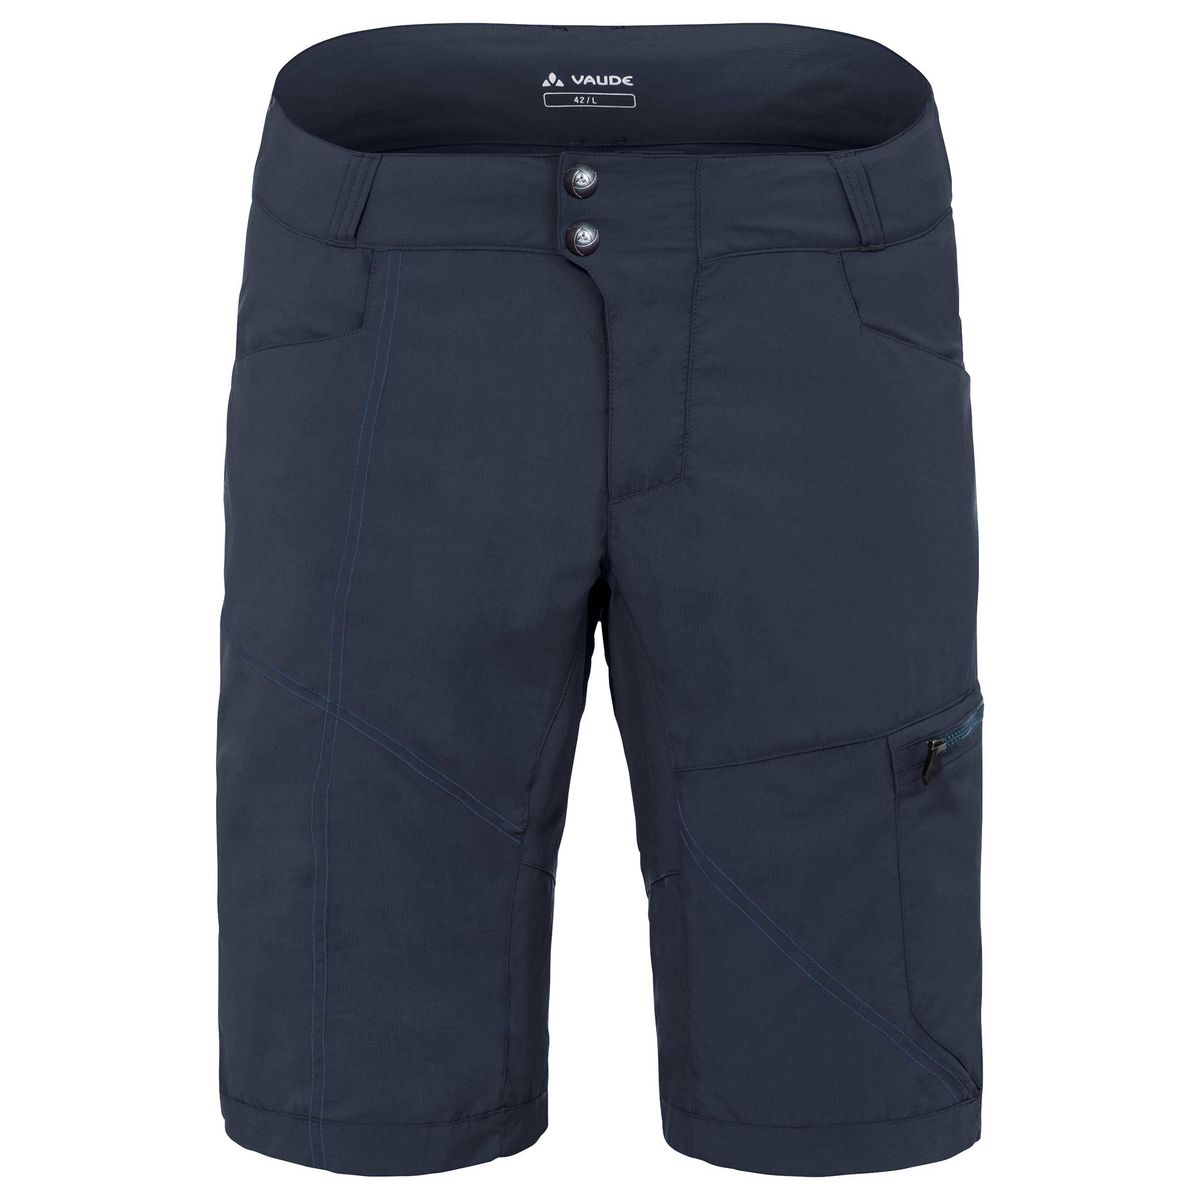 TAMARO bike shorts